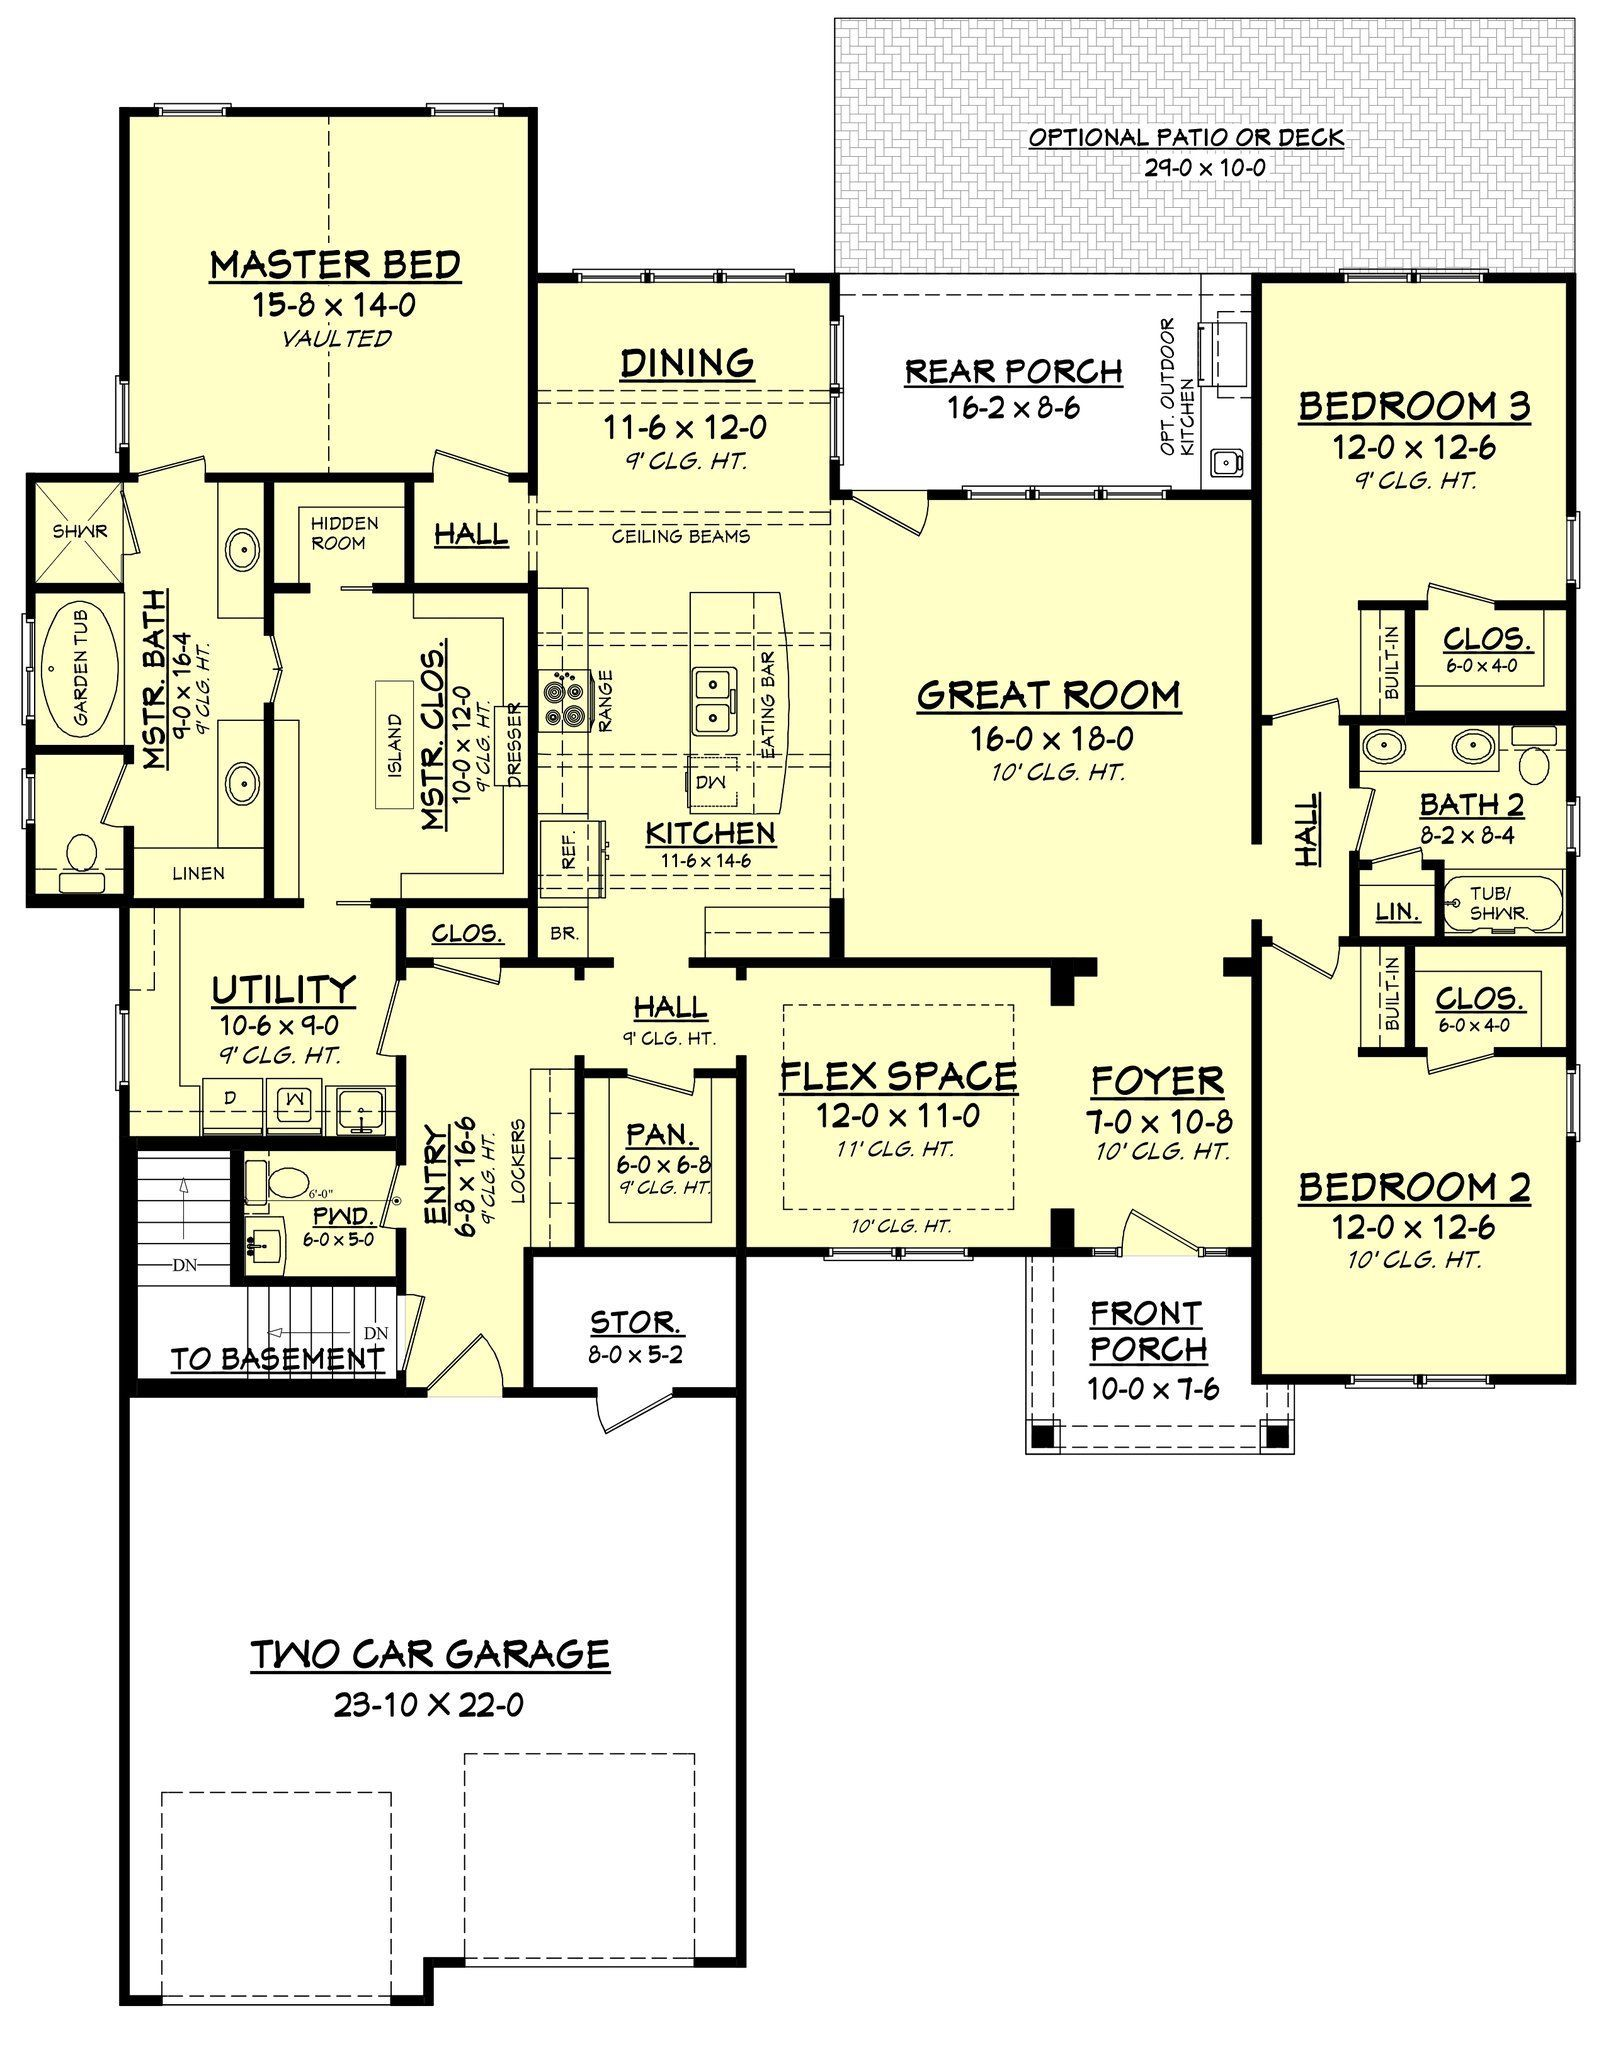 shower cubicles plan. This Craftsman Style House Plan Has An Amazing Floor Plan. The Private Master Suite Offers. Glass Shower EnclosuresCraftsman Cubicles